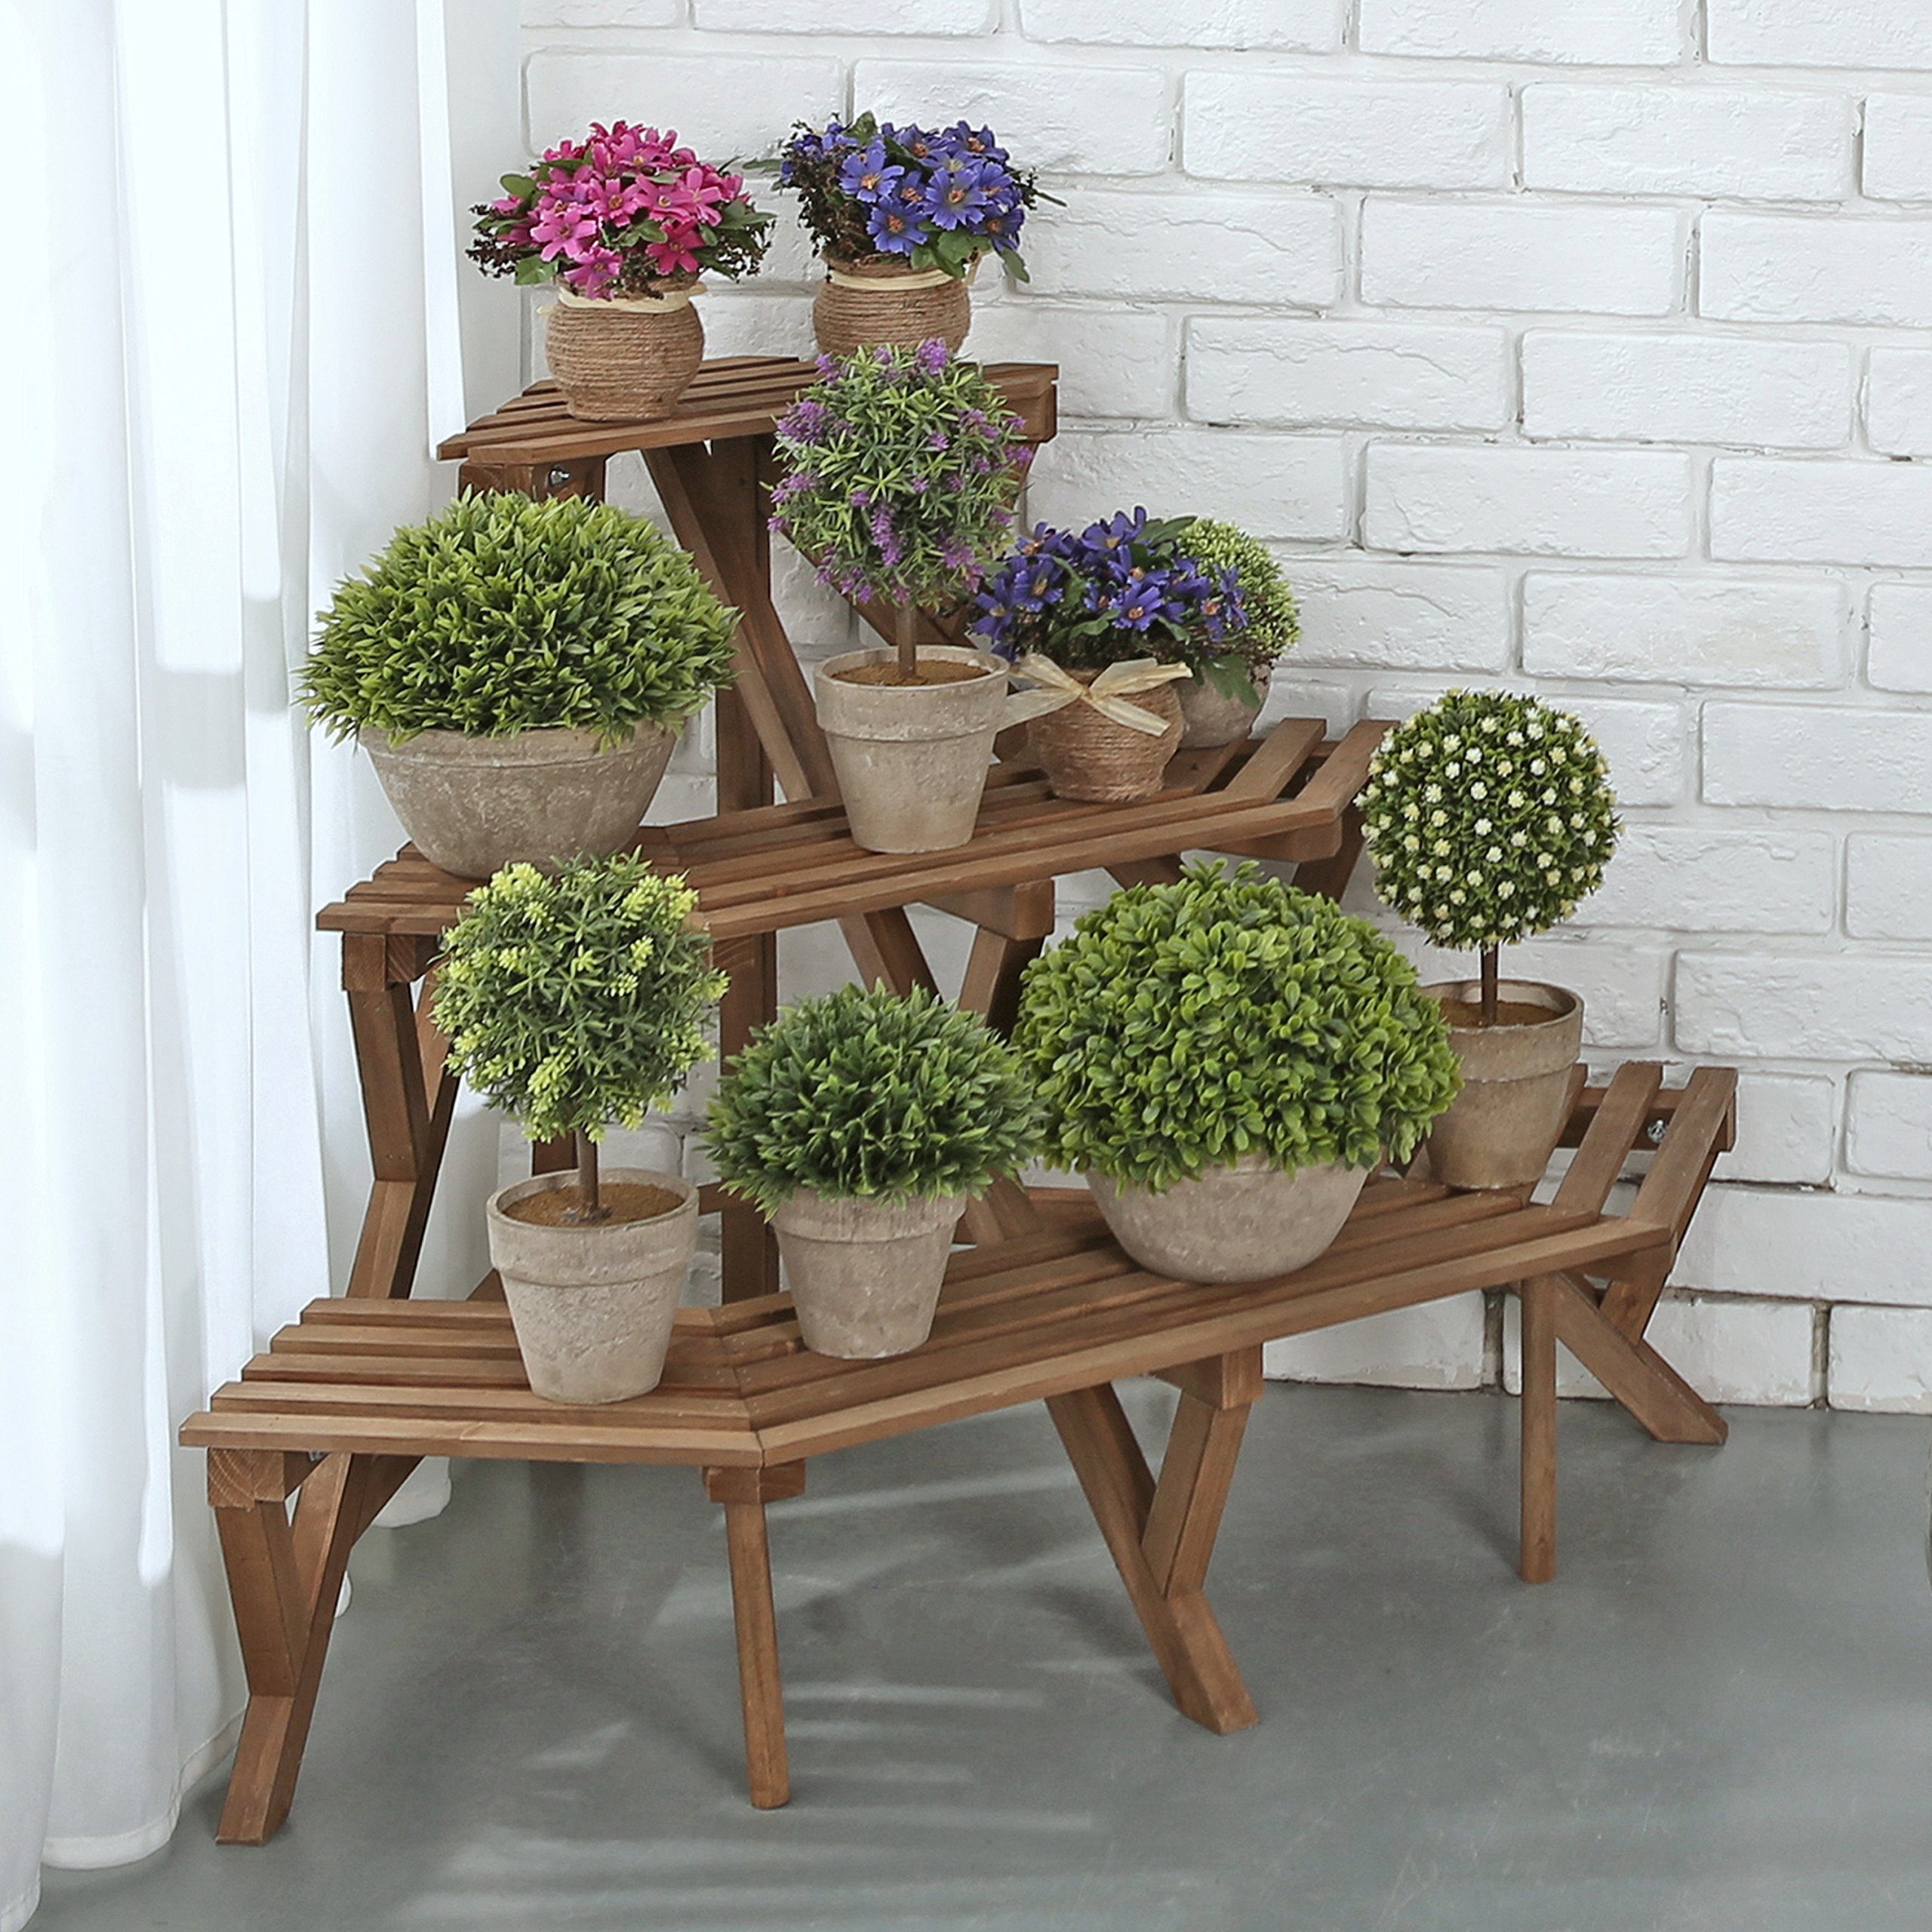 MyGift Rustic Brown Wood Planter Stand, Freestanding 3 Tier Corner Shelf Rack by MyGift